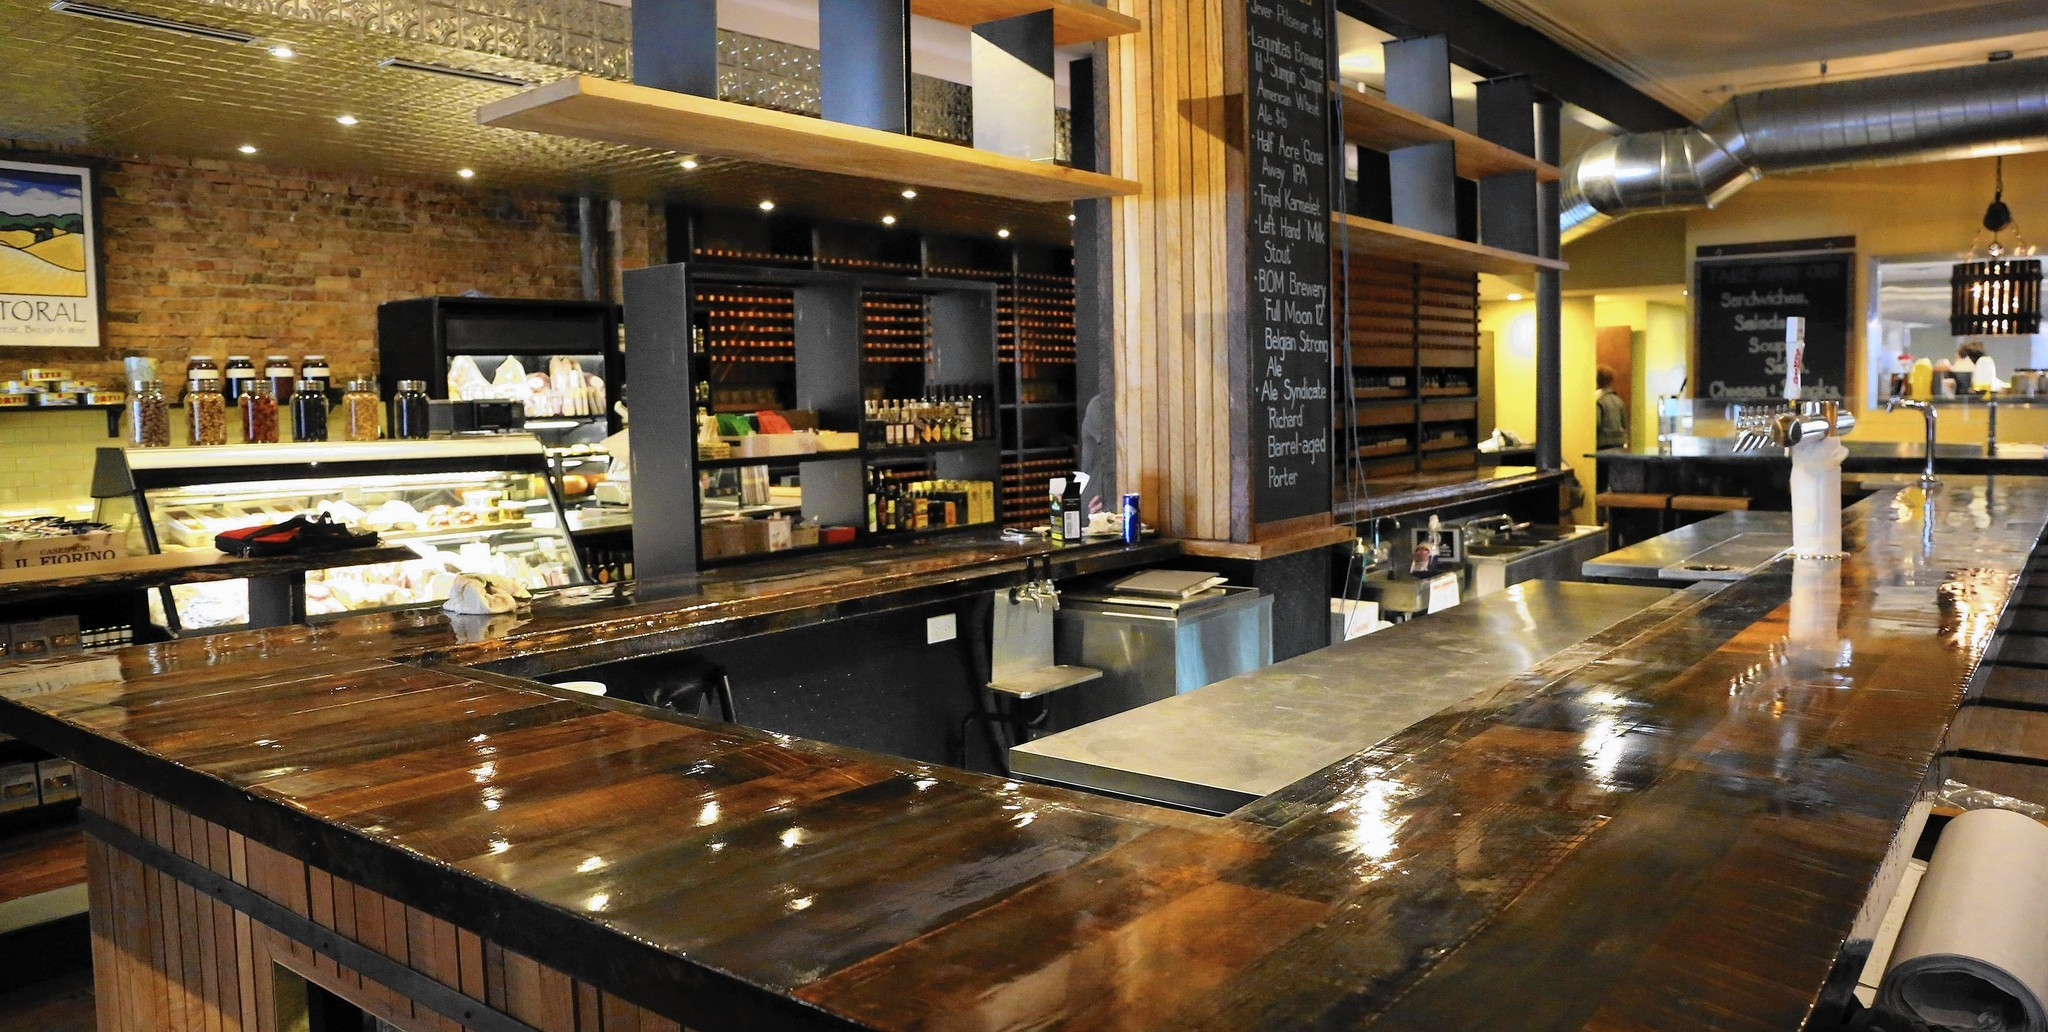 Pastoral S Appellation Opens Today In Andersonville